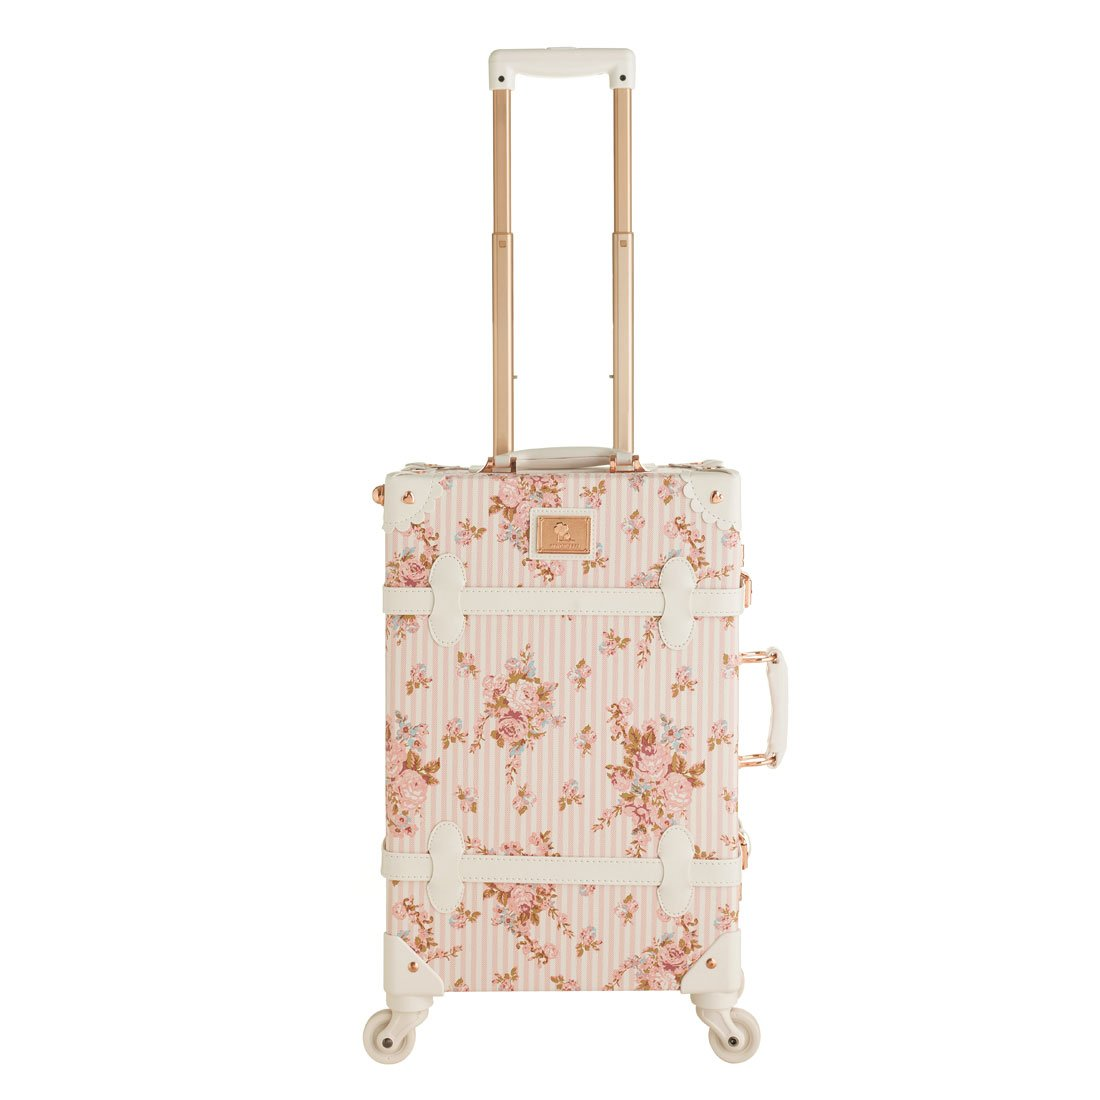 Retro Women Floral Pu Leather Travel Suitcases 20'' - 26'' with Spinner Wheels for Girls (26'', Pink floral) by UNIWALKER